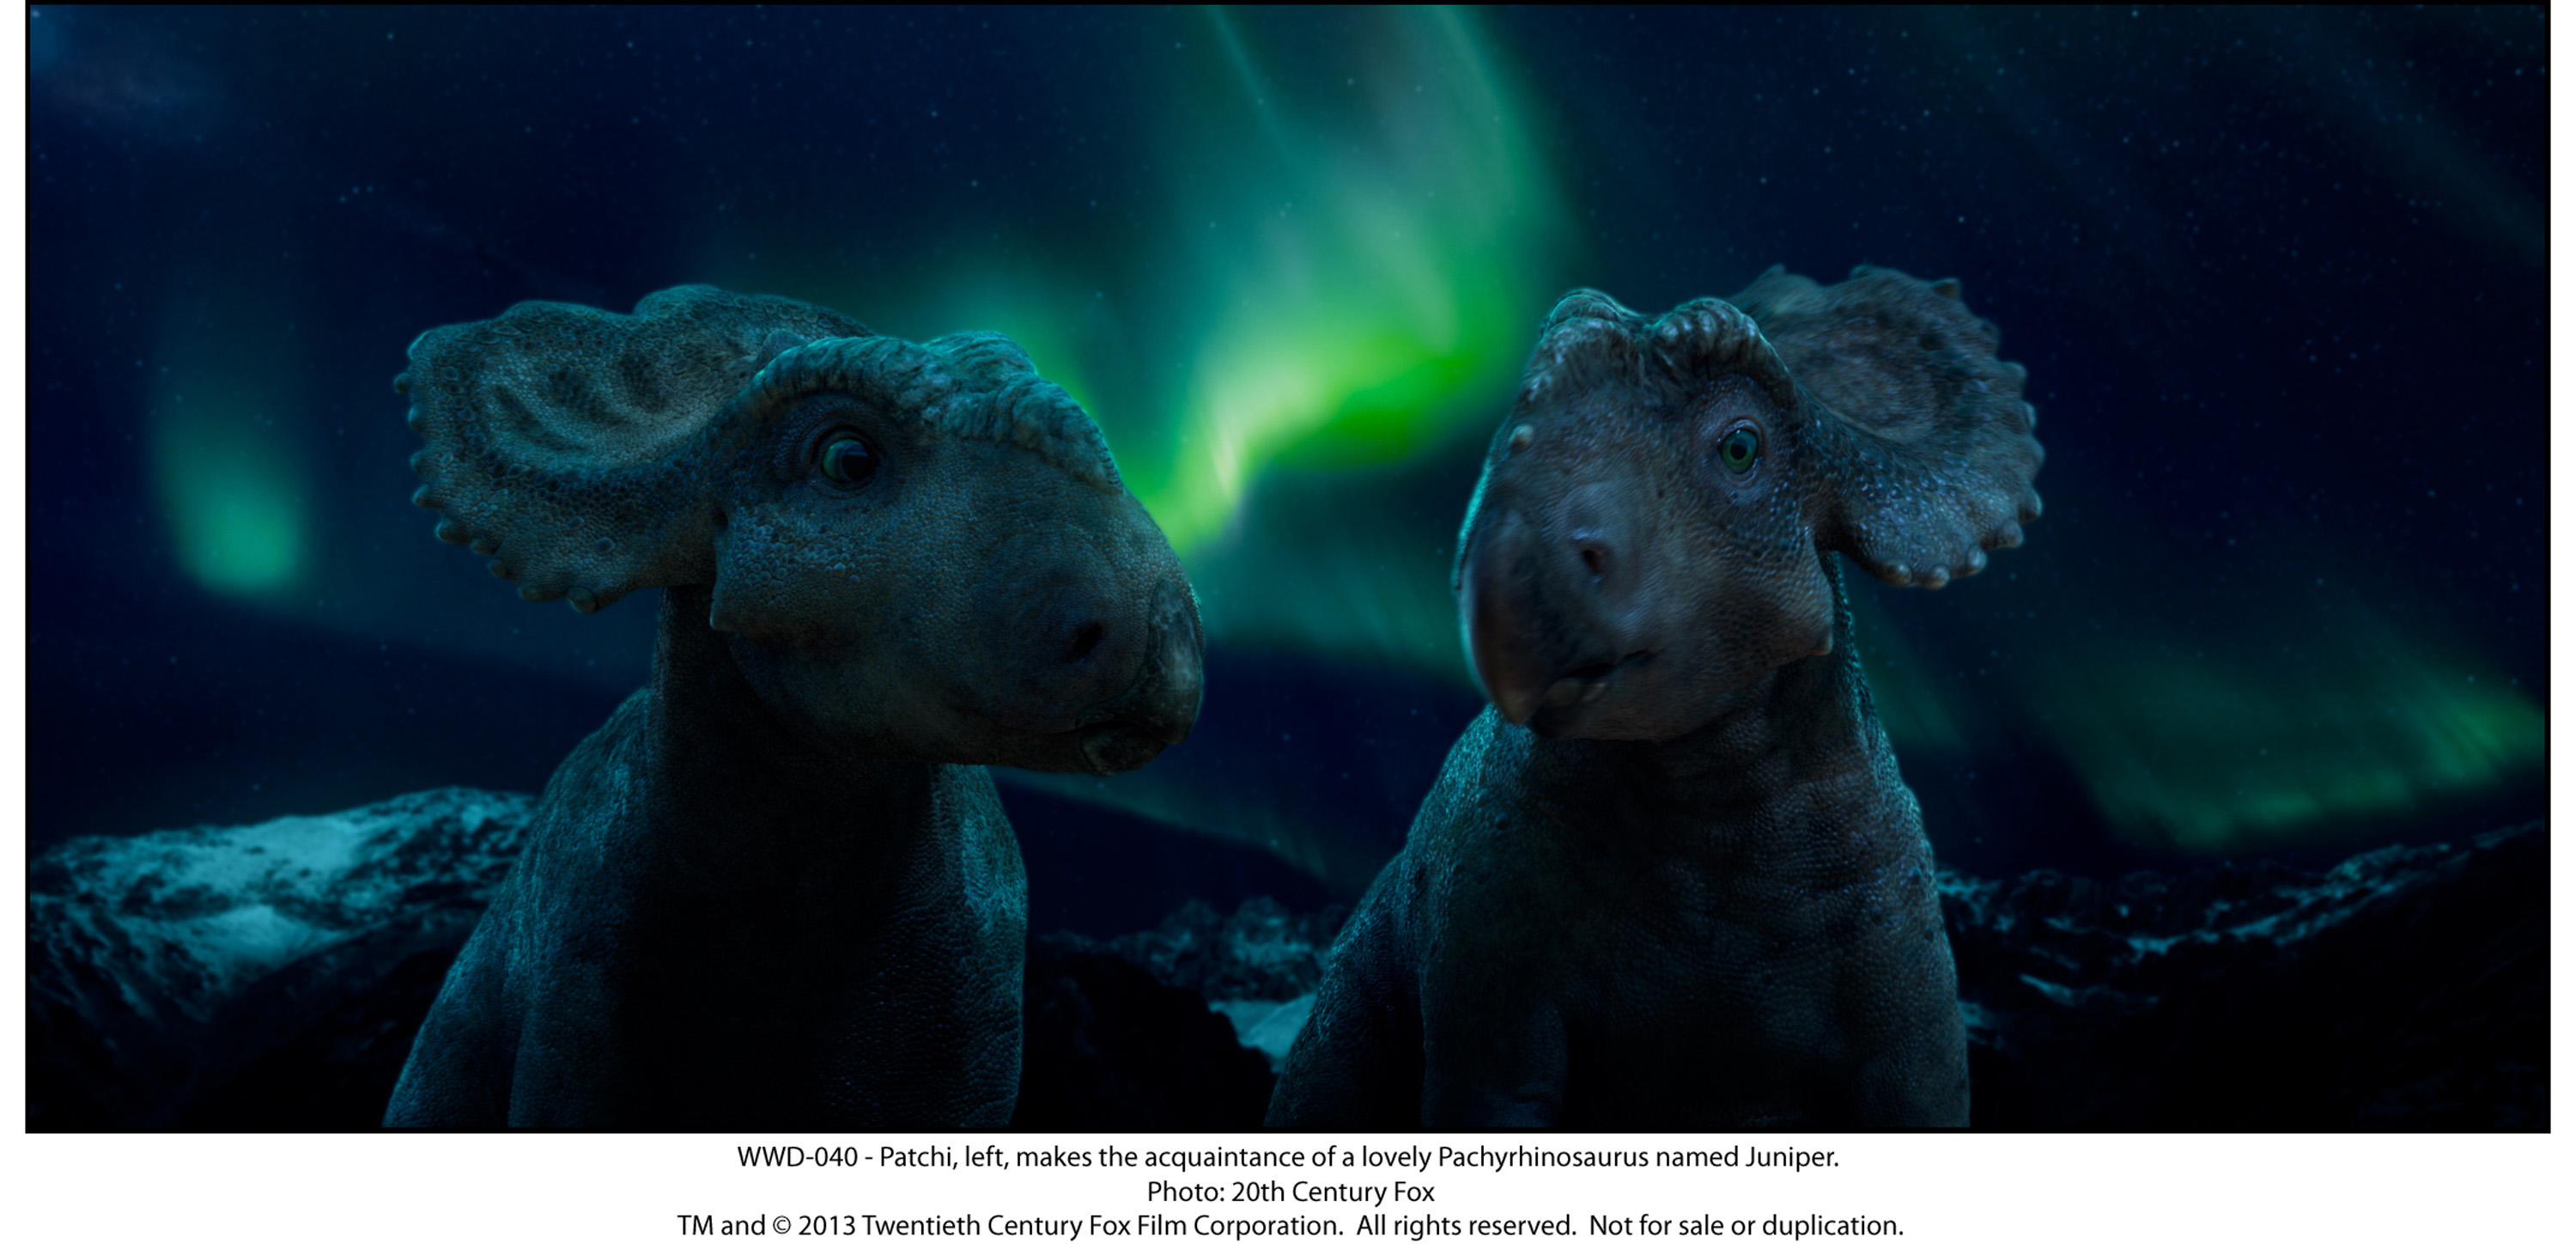 M-GO movies online and Walking with Dinosaurs on Digital HD